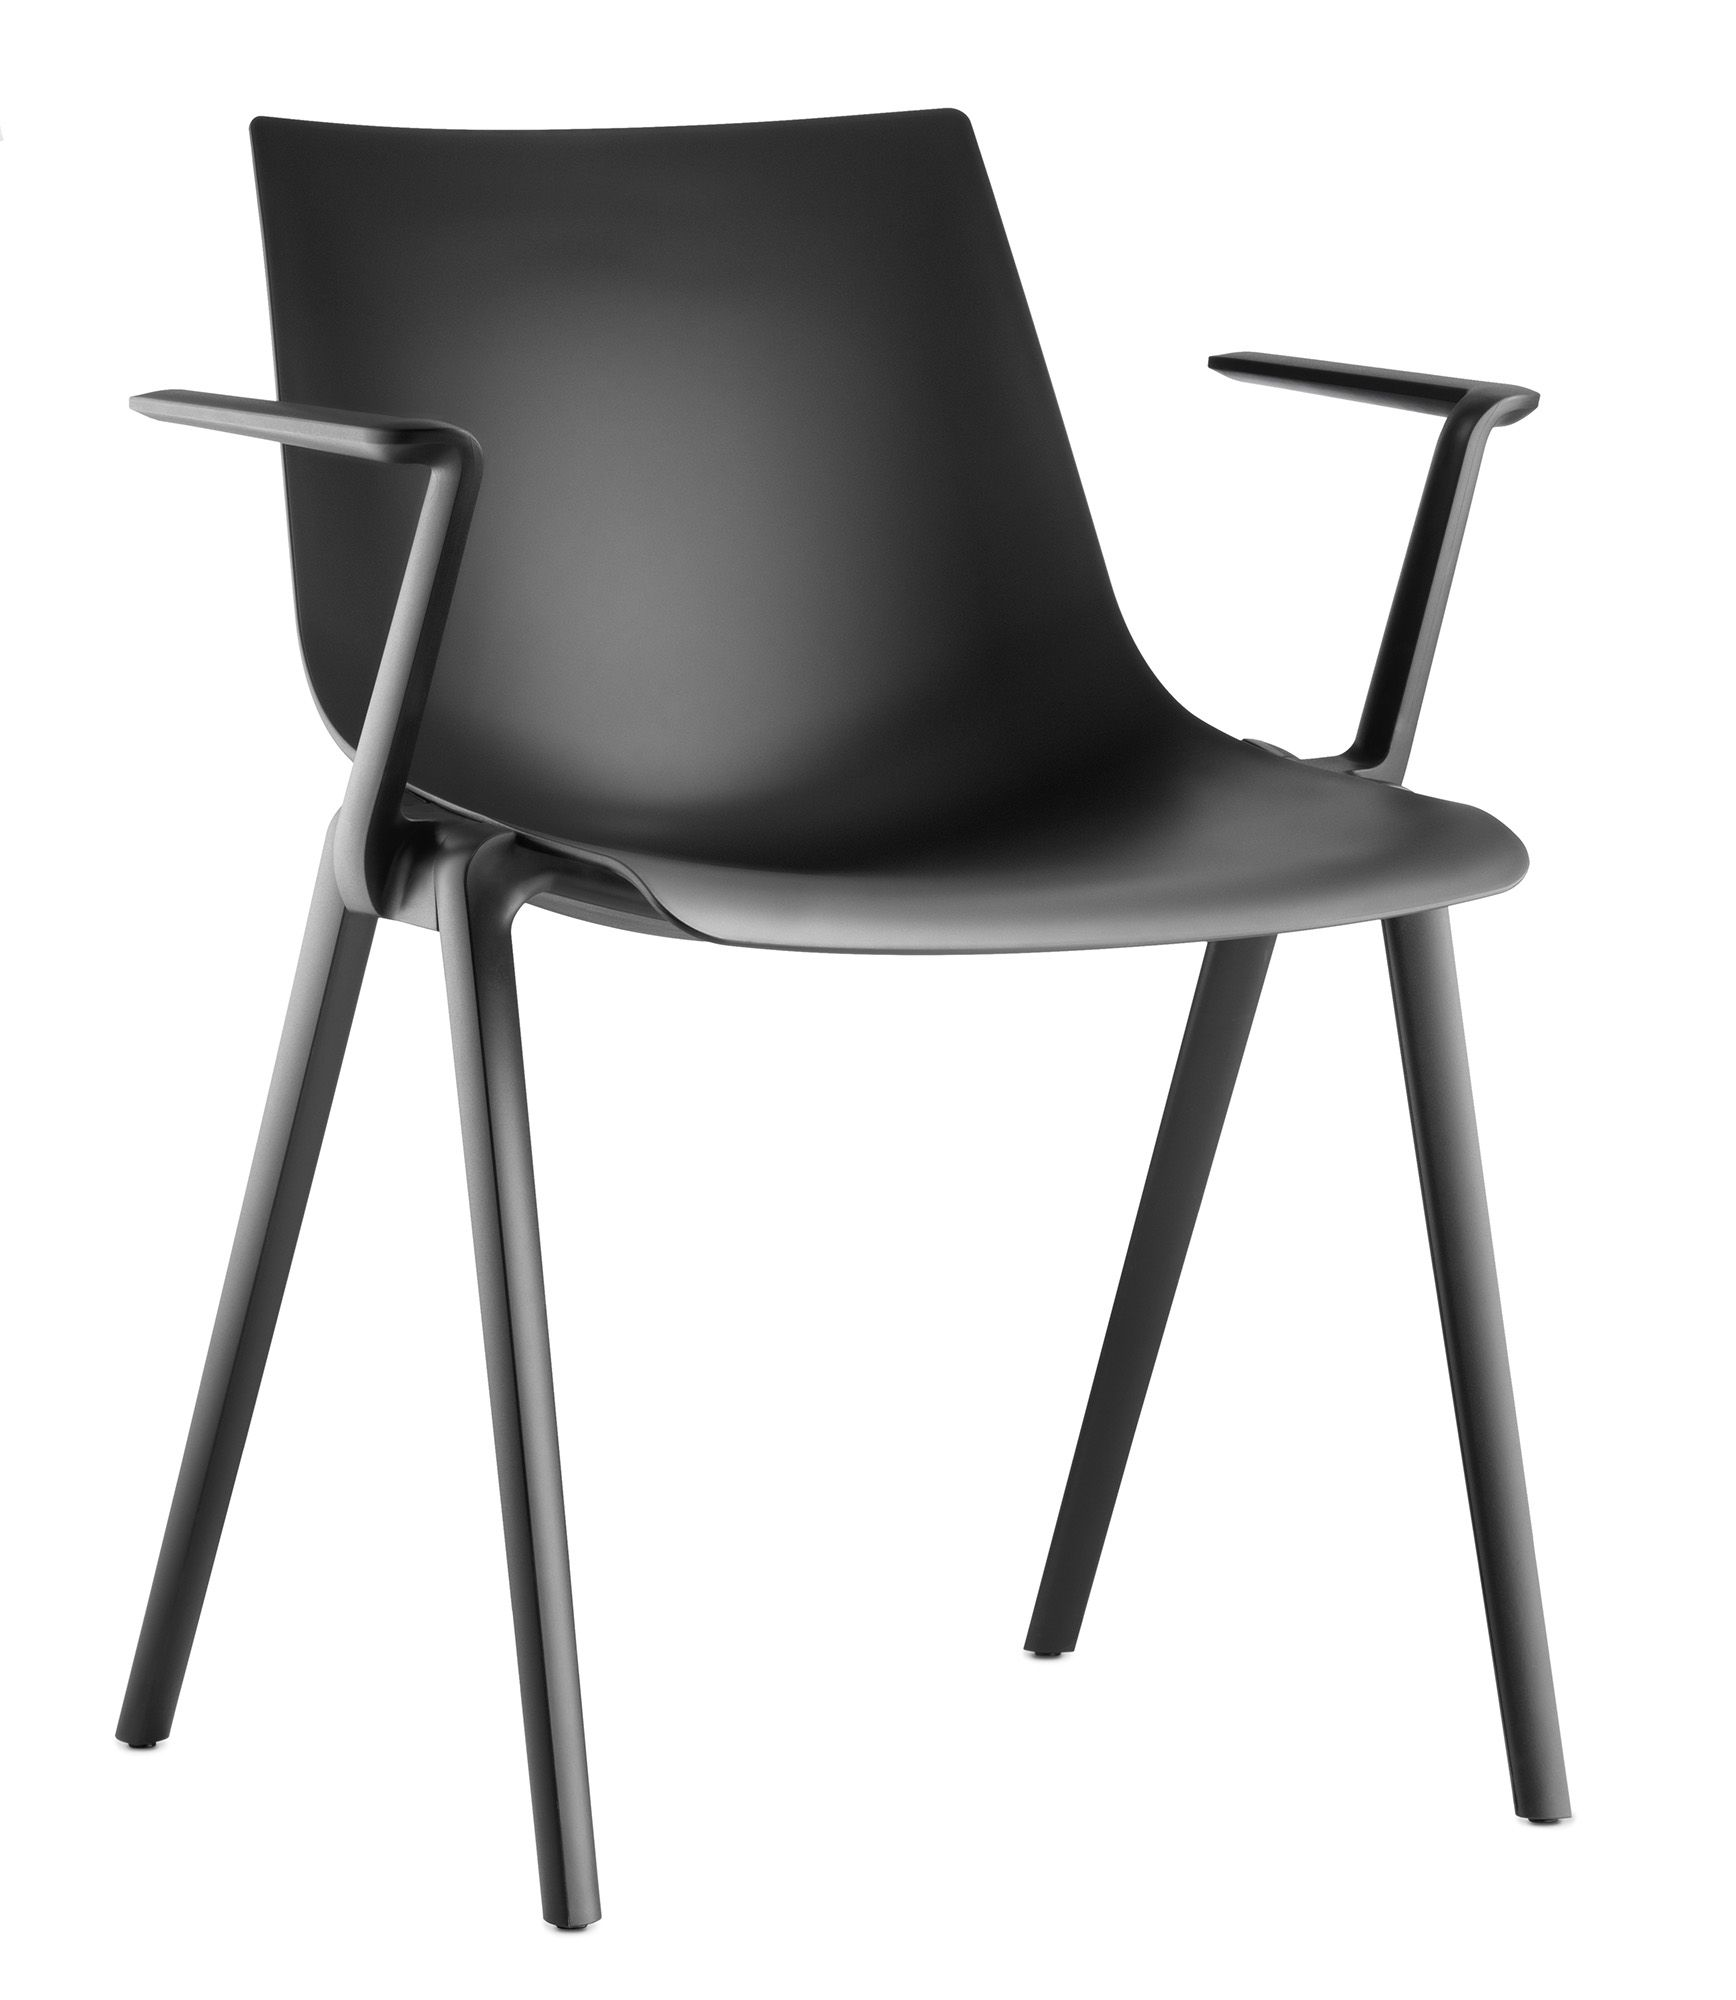 Aula stackable chair meeting and side chair